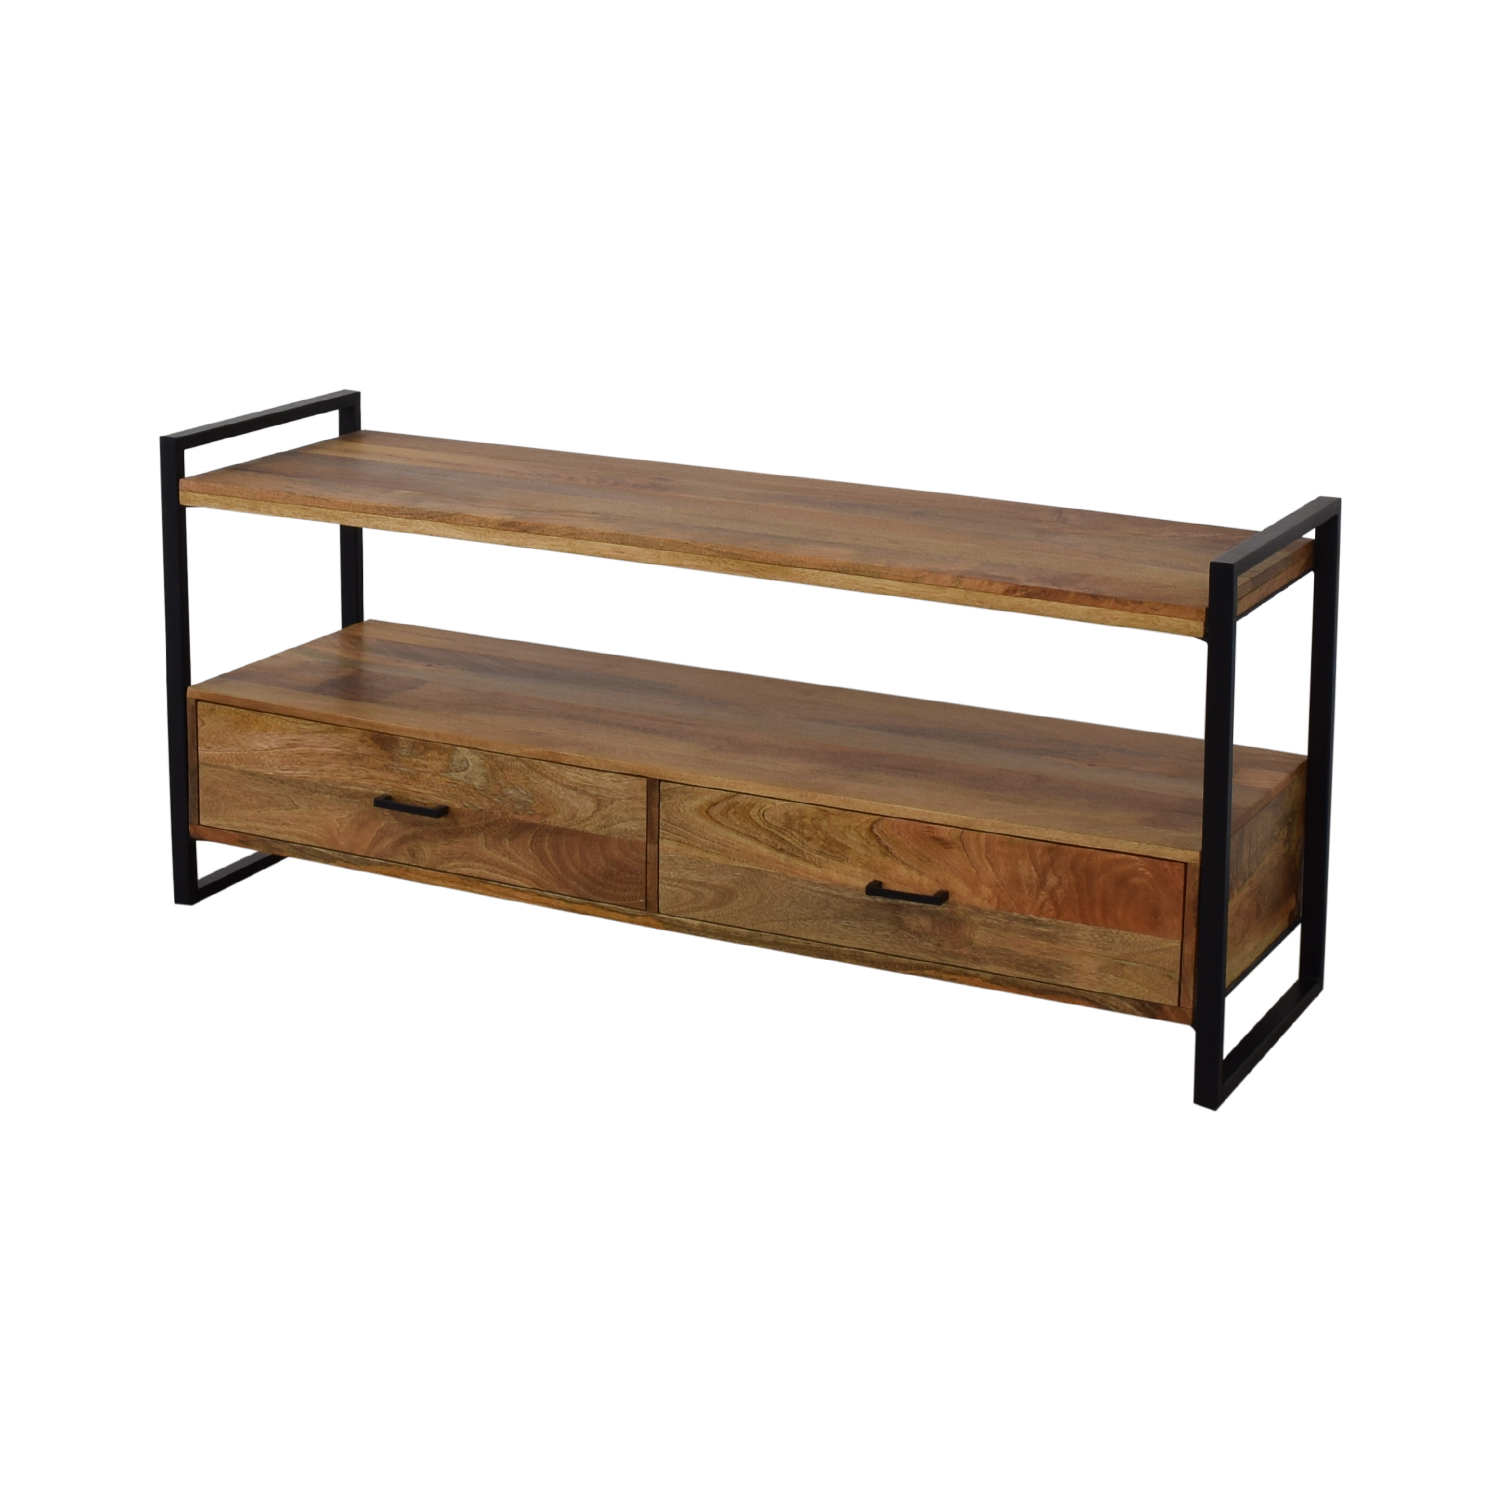 Simpli Home Industrial TV stand sale